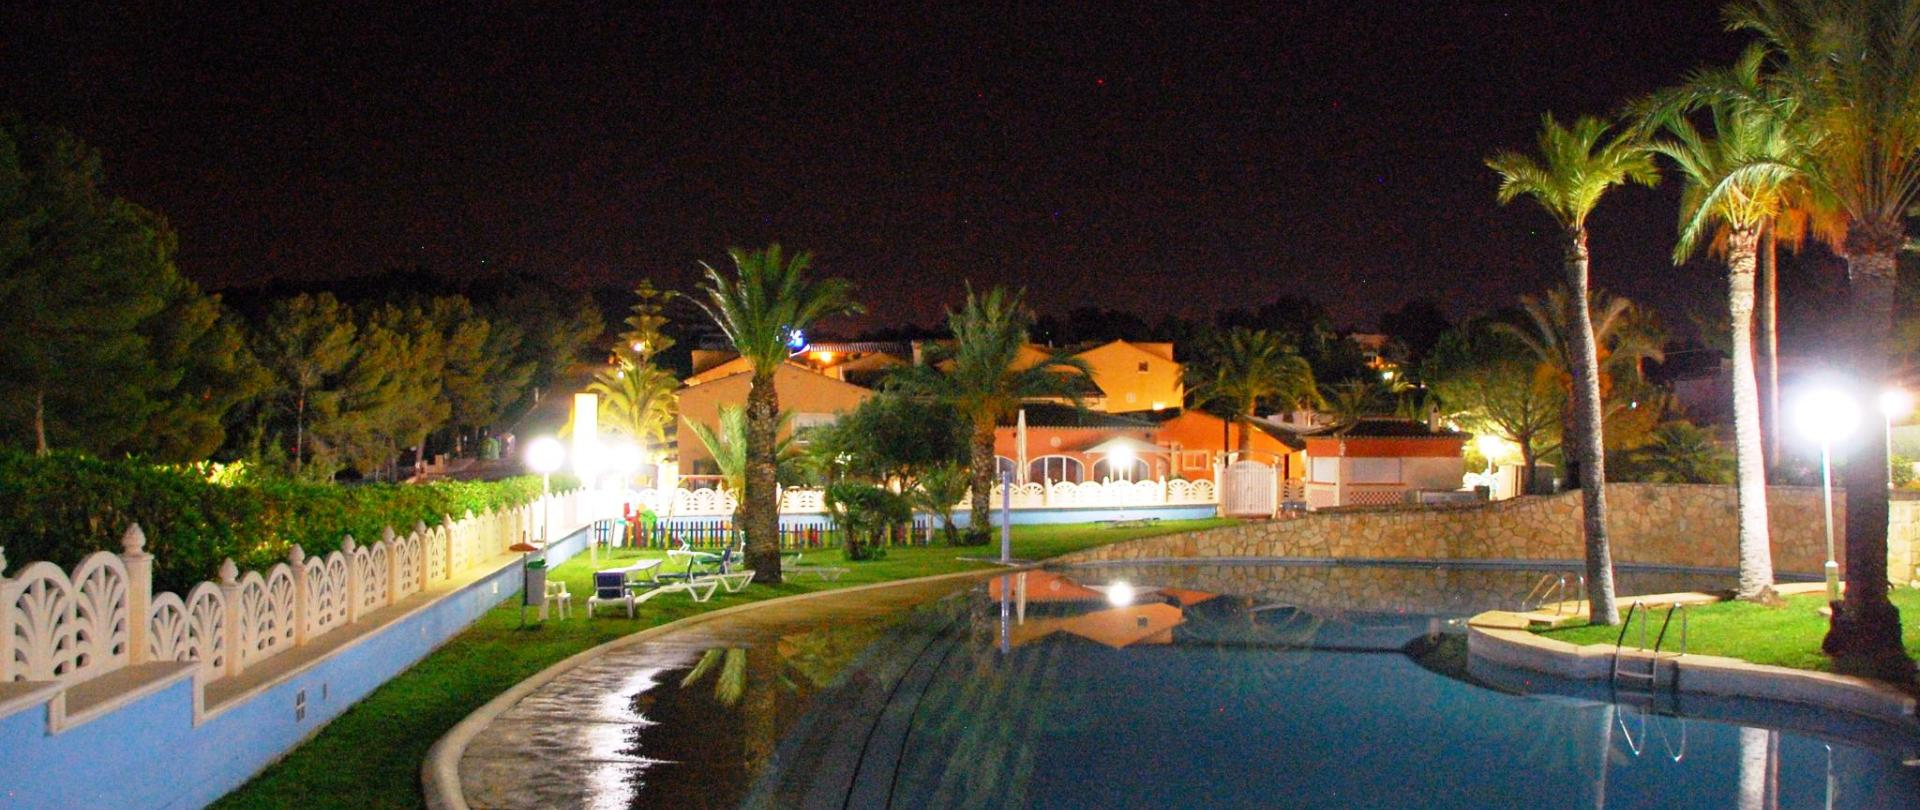 Swimming Pool by Night.jpg